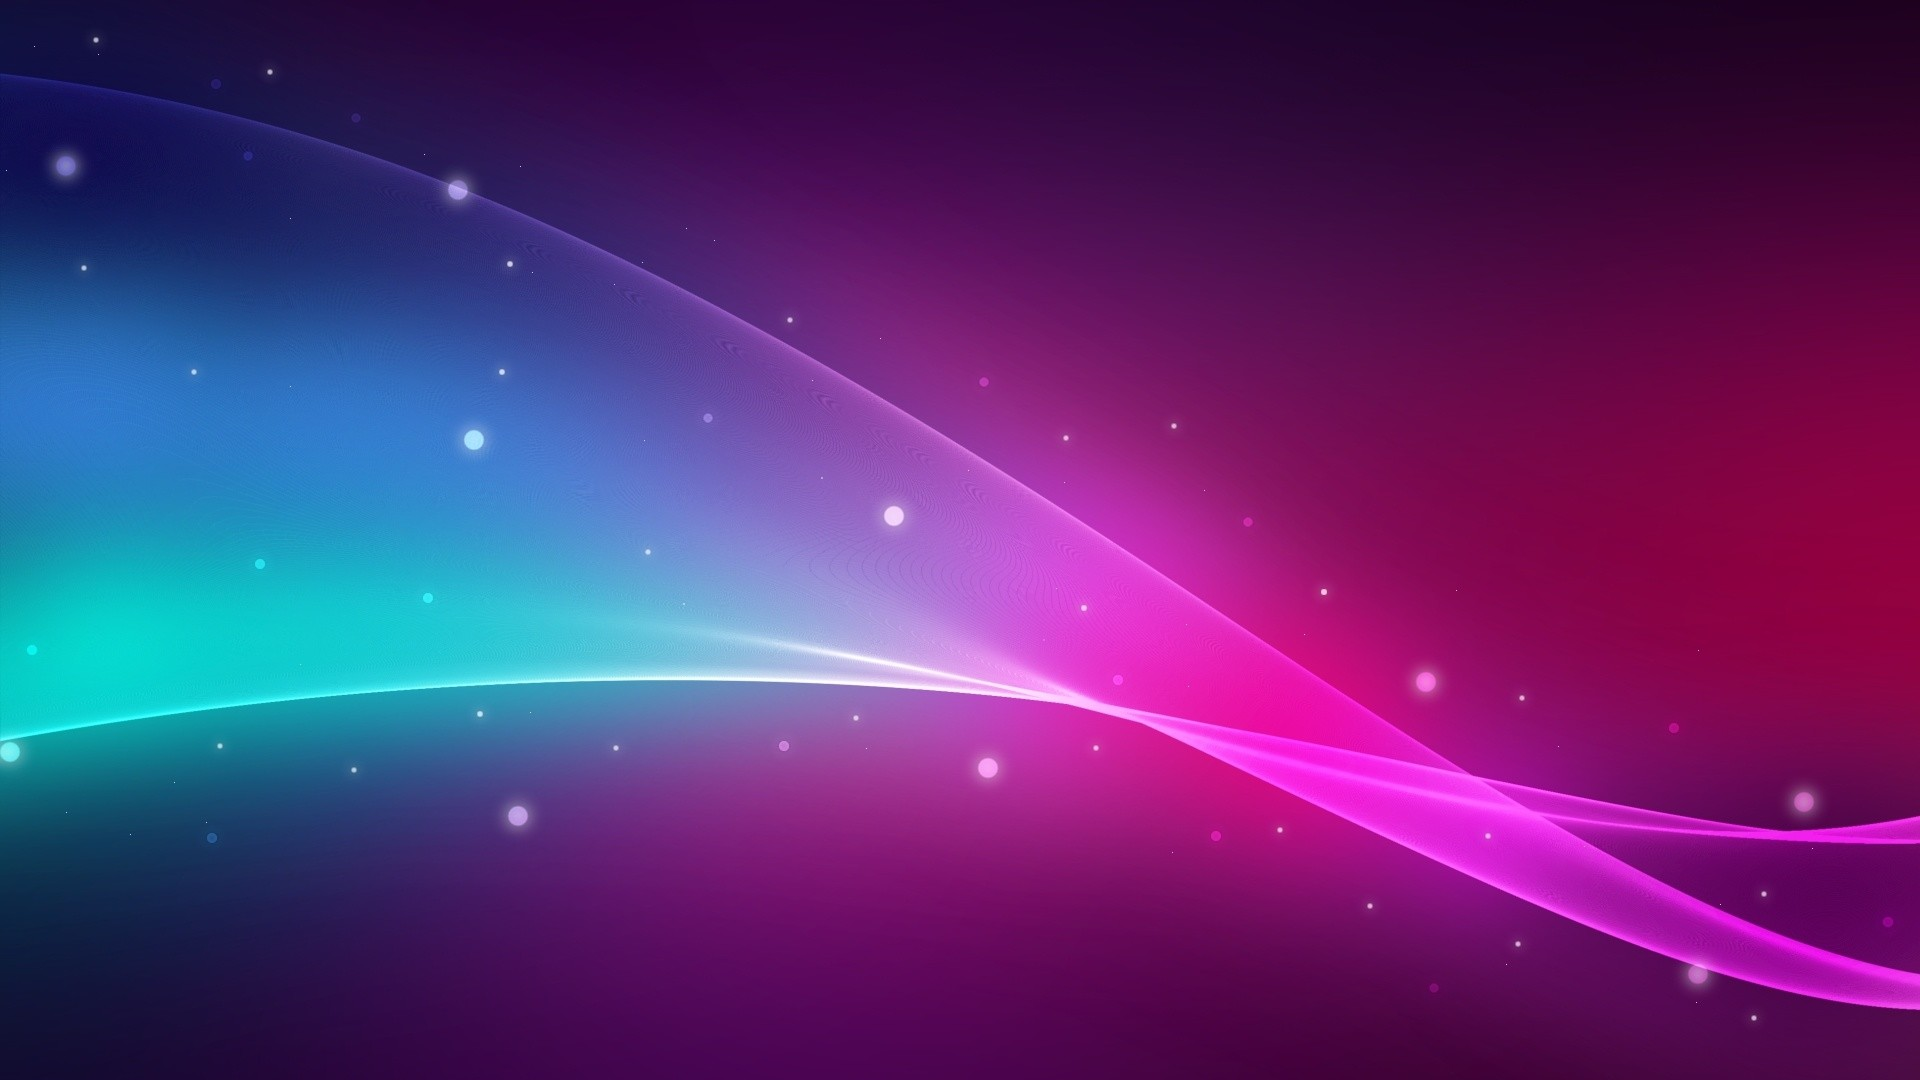 1920x1080 Blue and Pink Wallpapers - WallpaperSafari